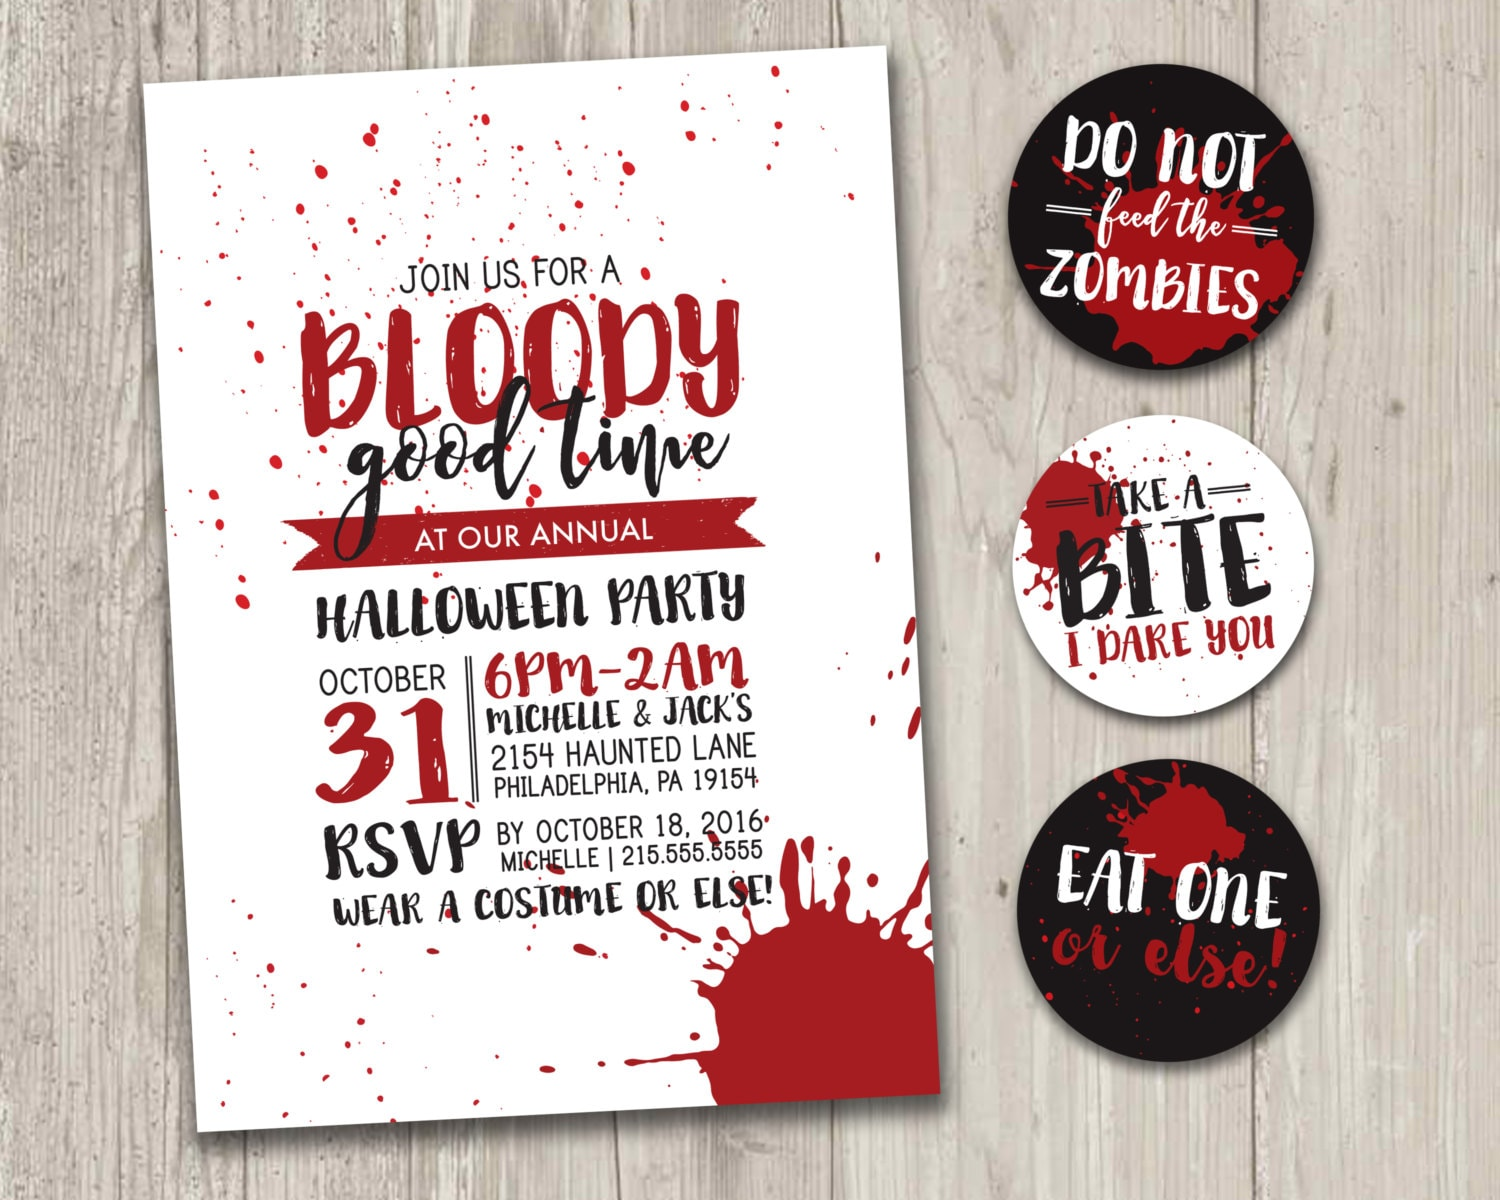 Halloween Party Invitation A Bloody Good Time Zombie   Etsy